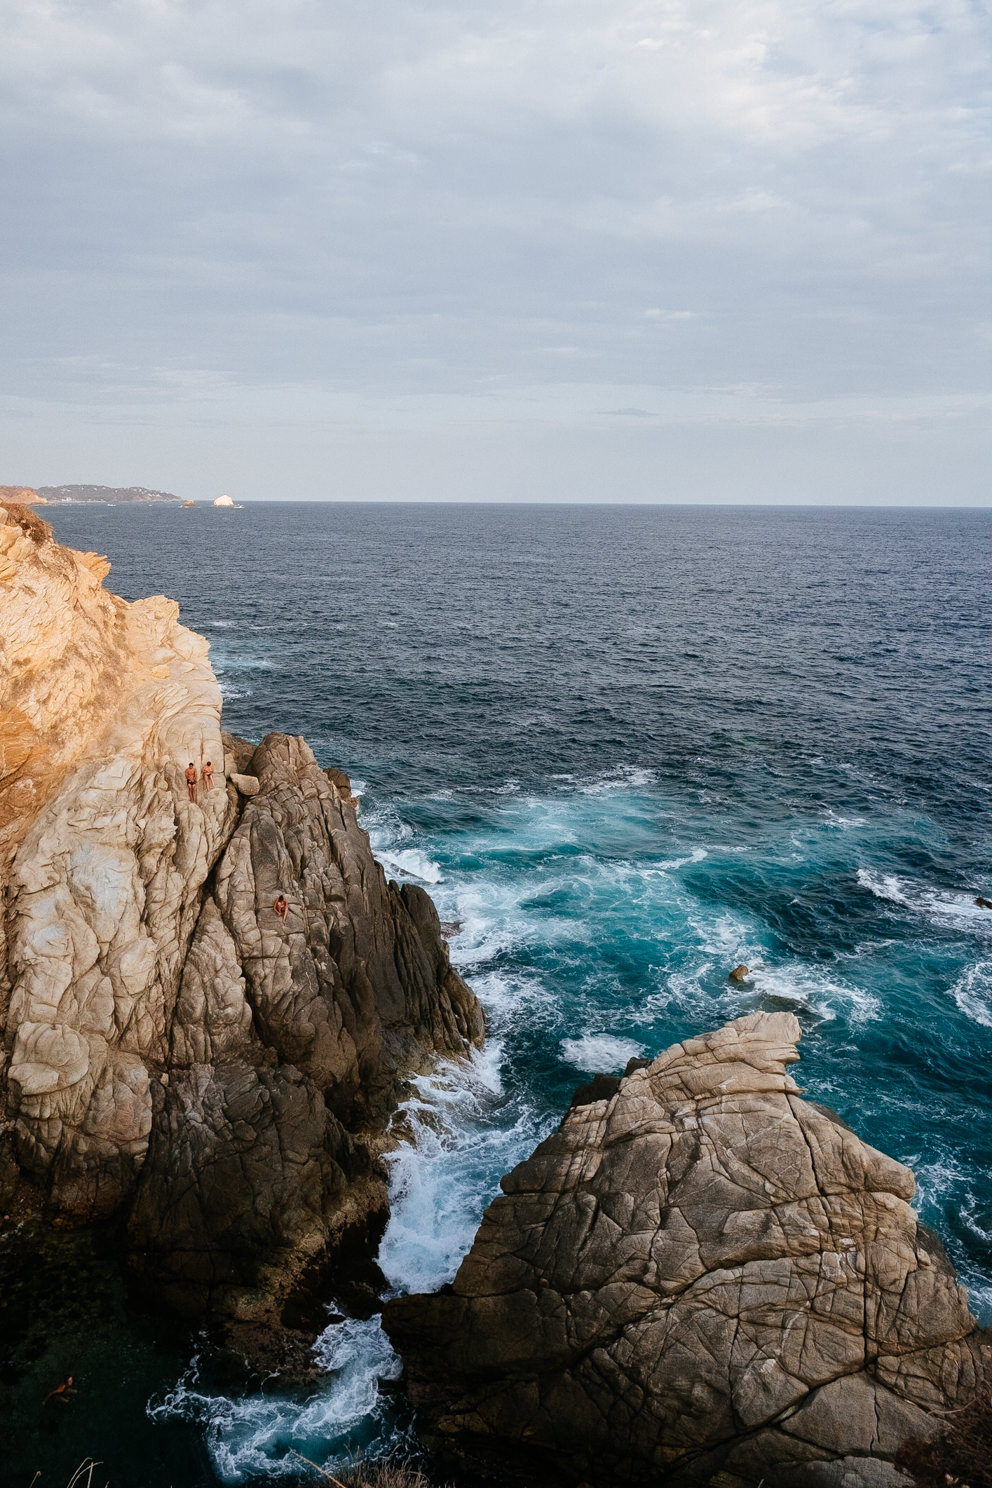 The View From Punta Cometa